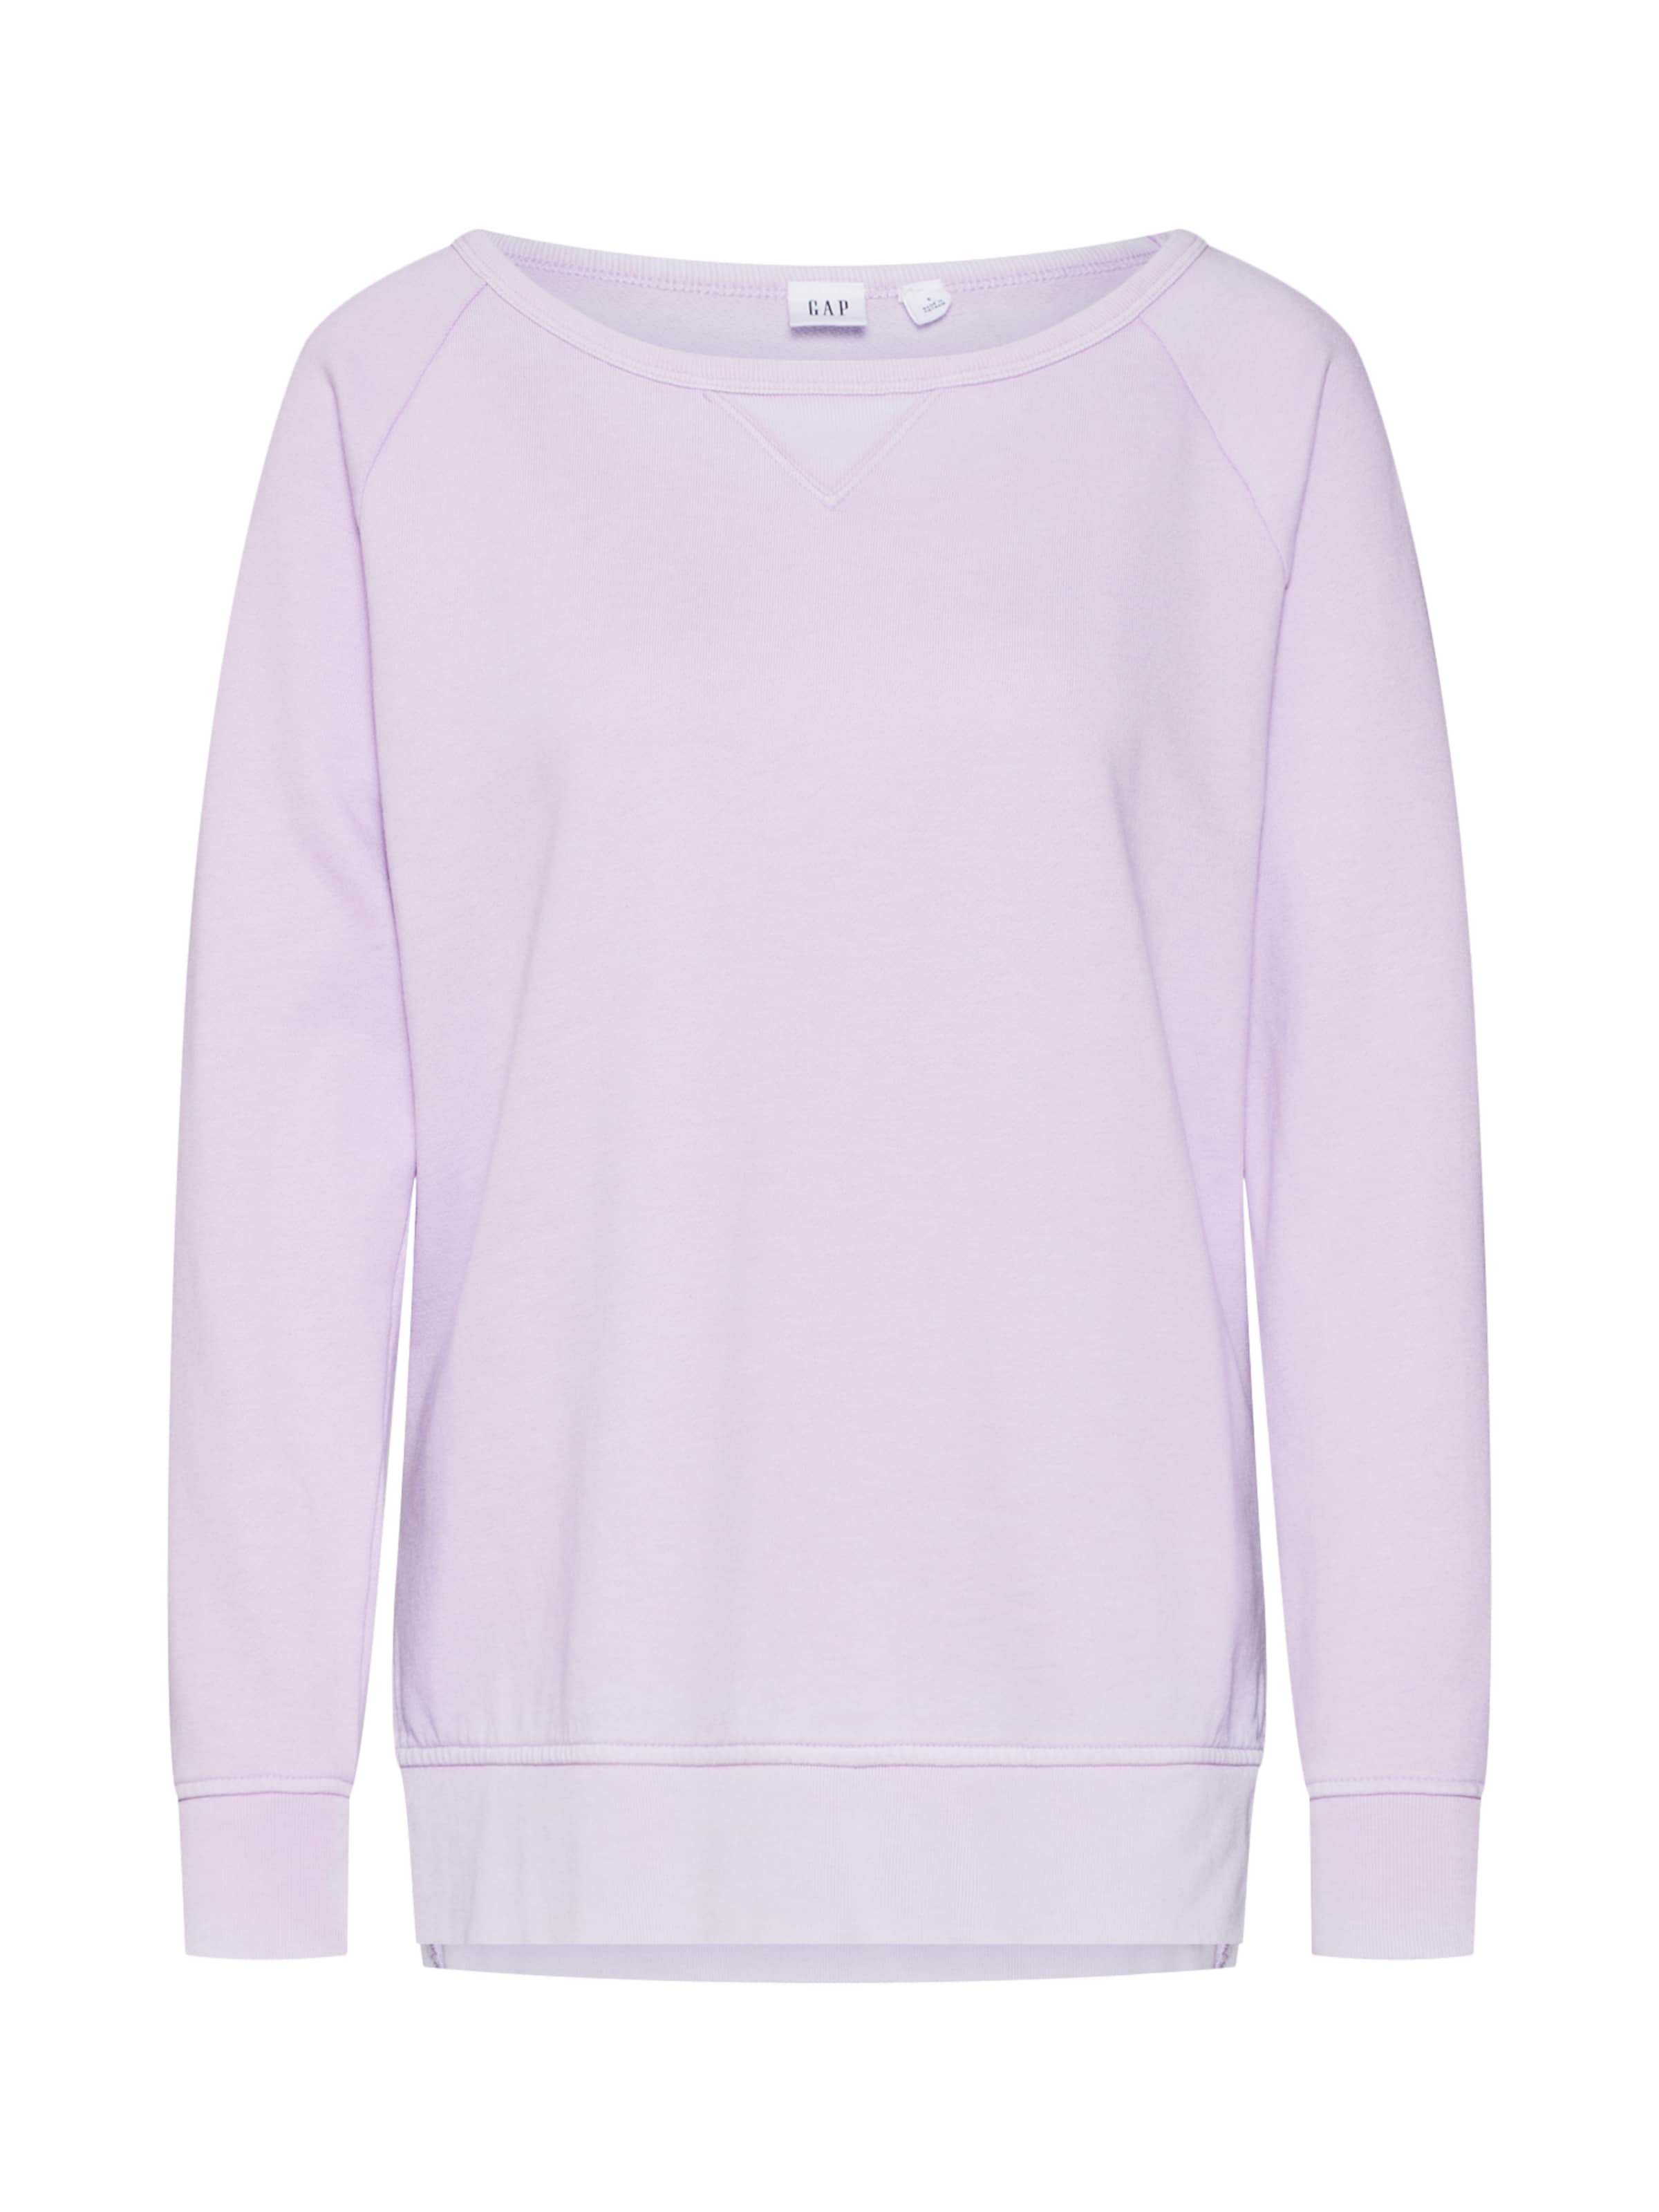 Gap Sweat Lilas En Gap Sweat shirt shirt 2EIWDH9Y